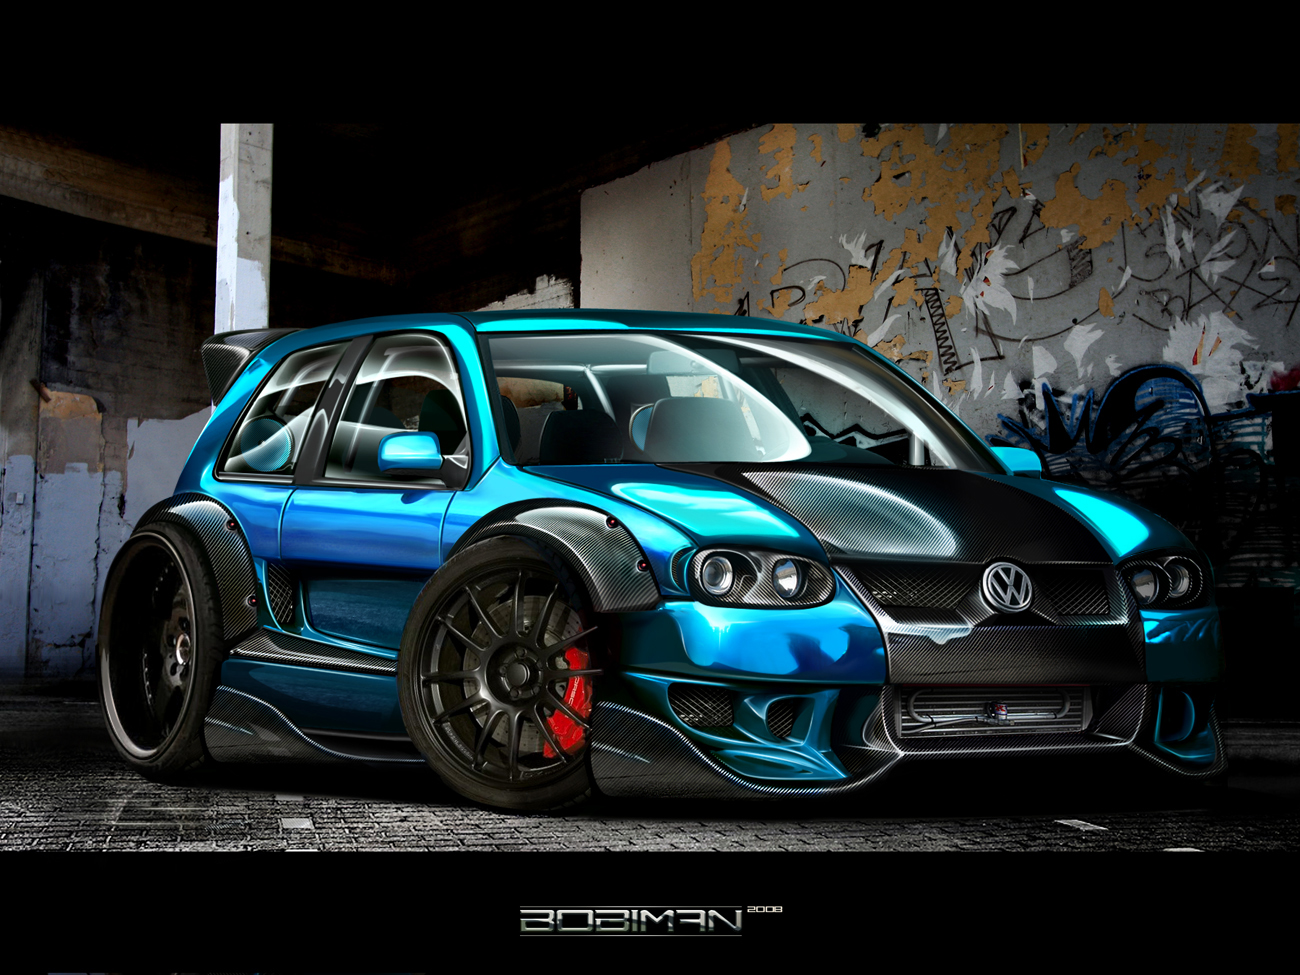 Hd Wallpapers Collection Hot Cars Wallpaper